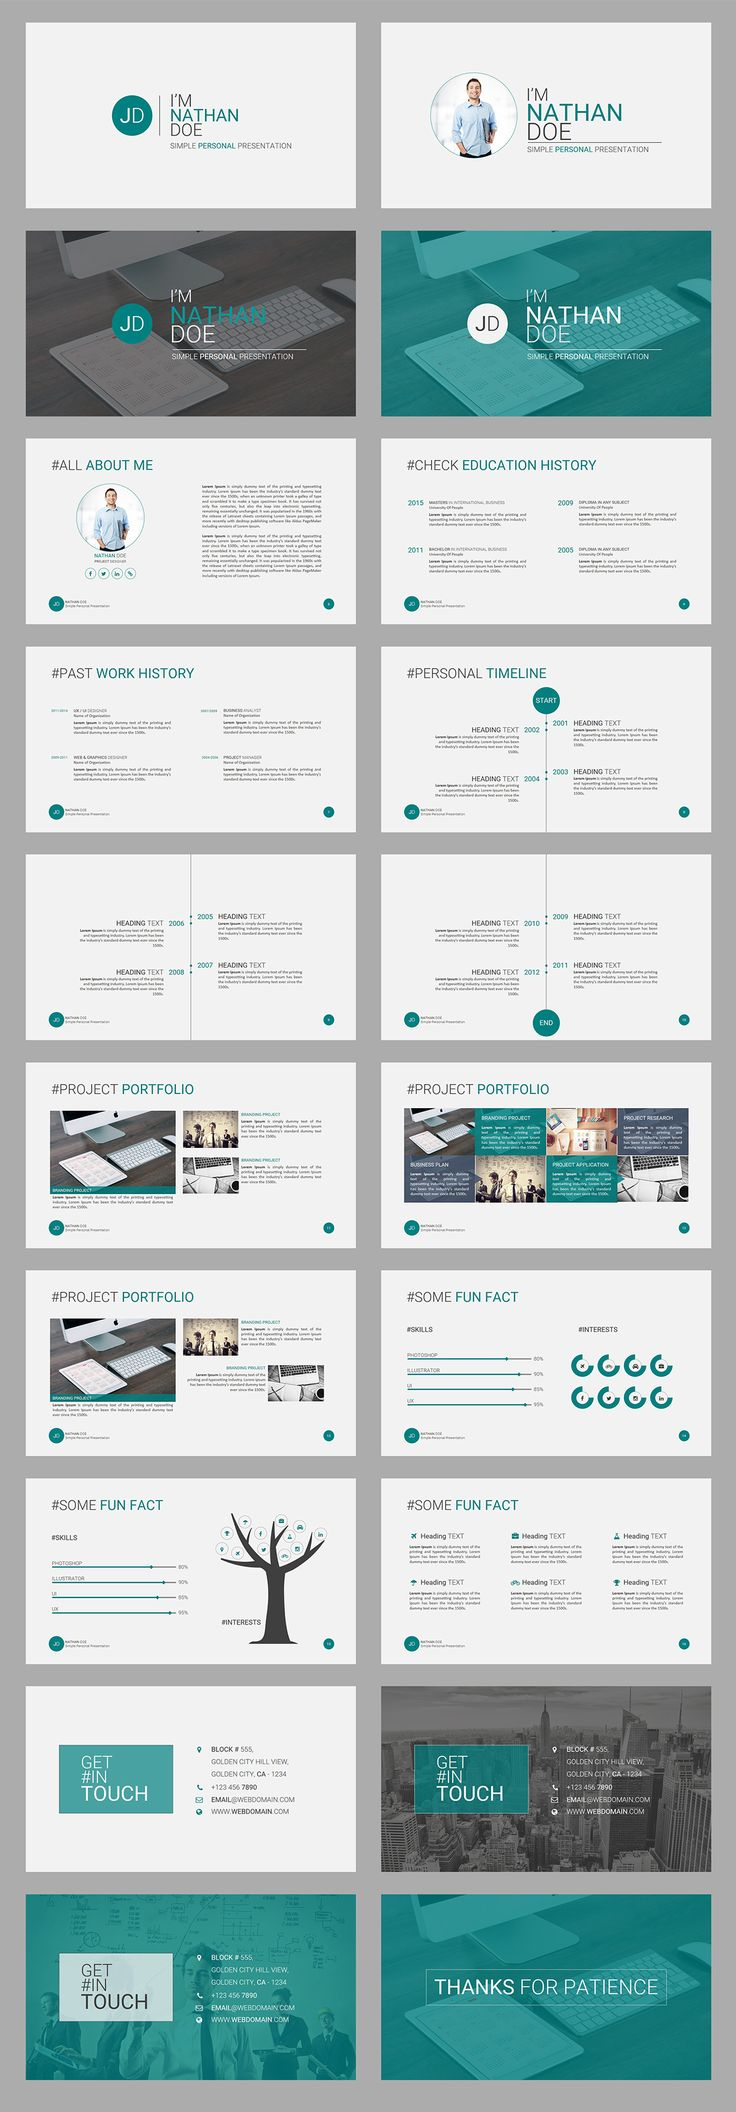 best powerpoint presentations ideas jd personal powerpoint presentation template on behance